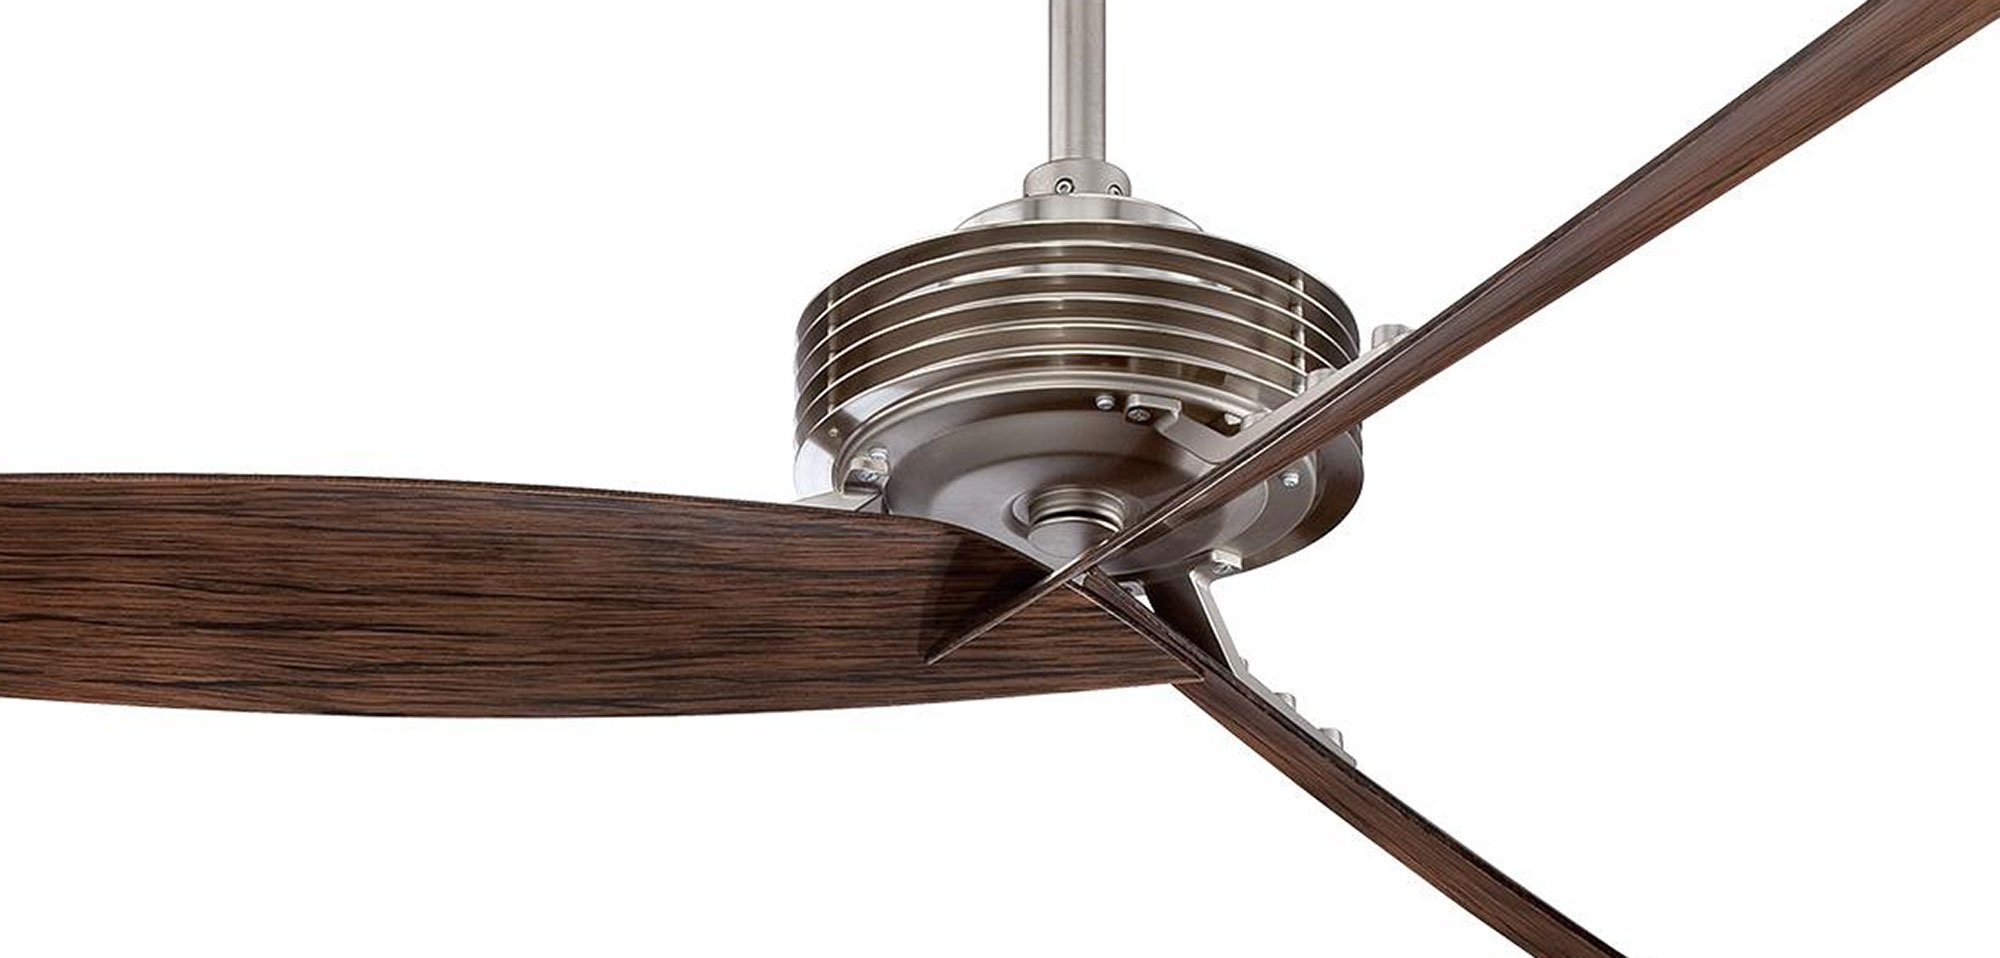 Unique Ceiling Fans For Modern Home Design – Interior Decorating Within Well Known High End Outdoor Ceiling Fans (View 18 of 20)